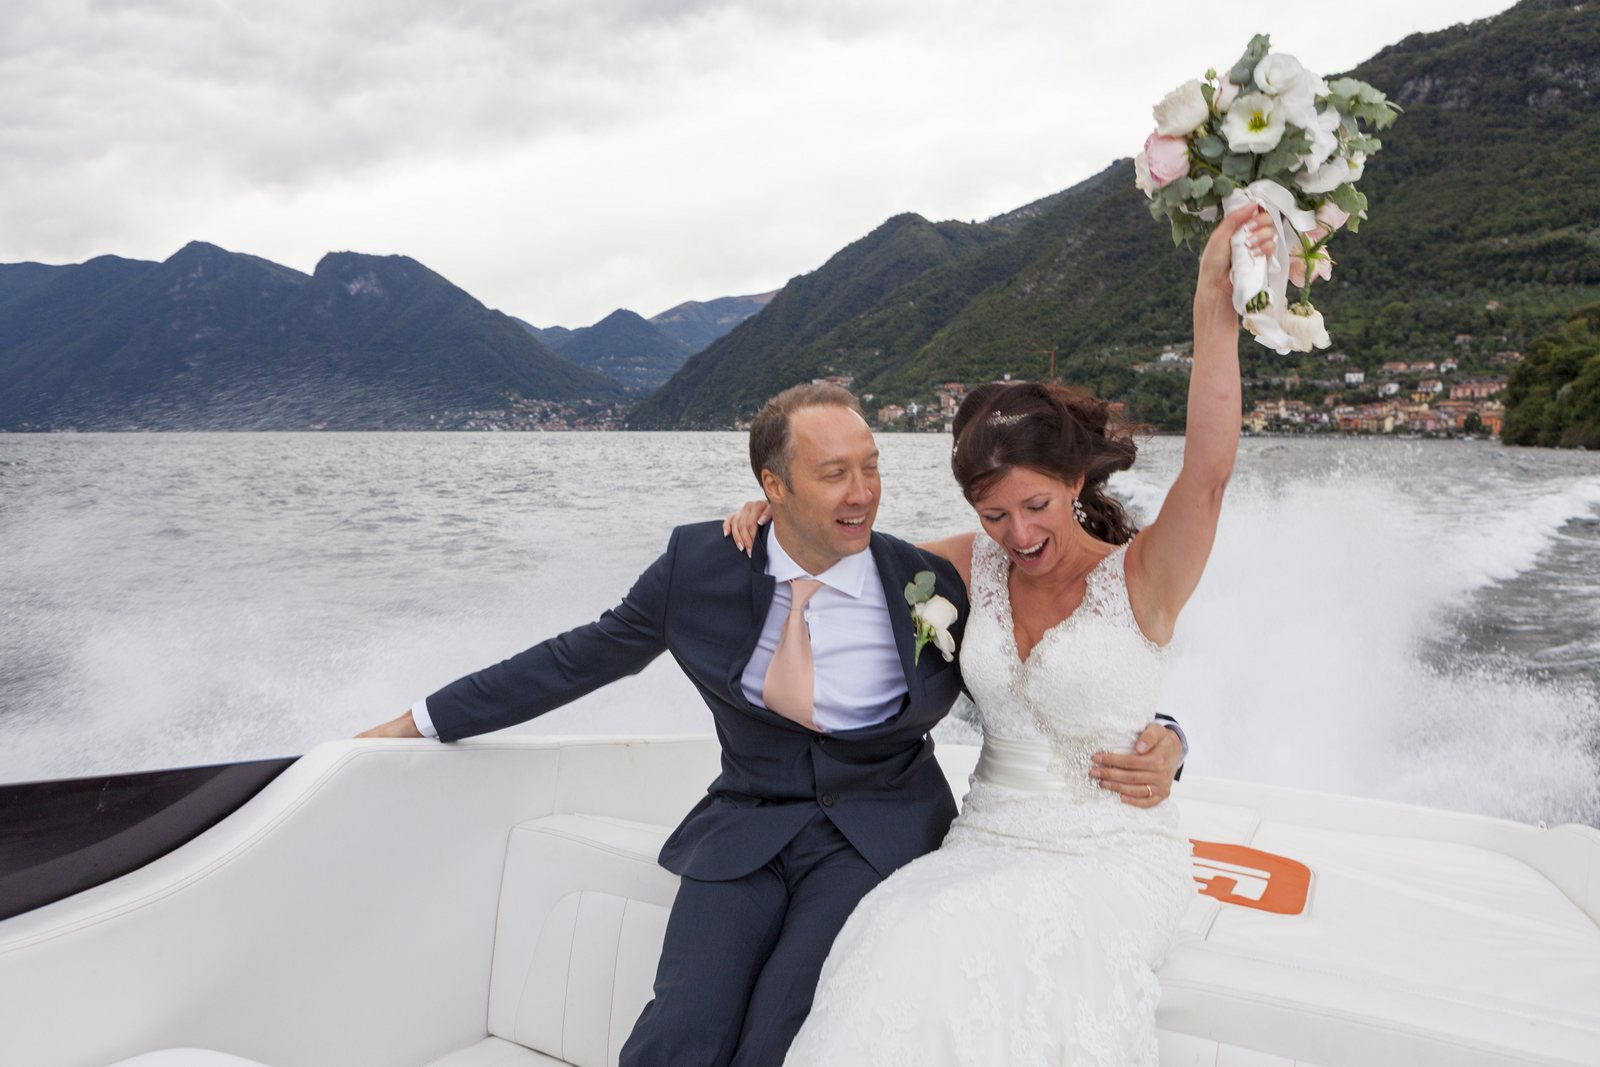 motor boat for your wedding on lake Como